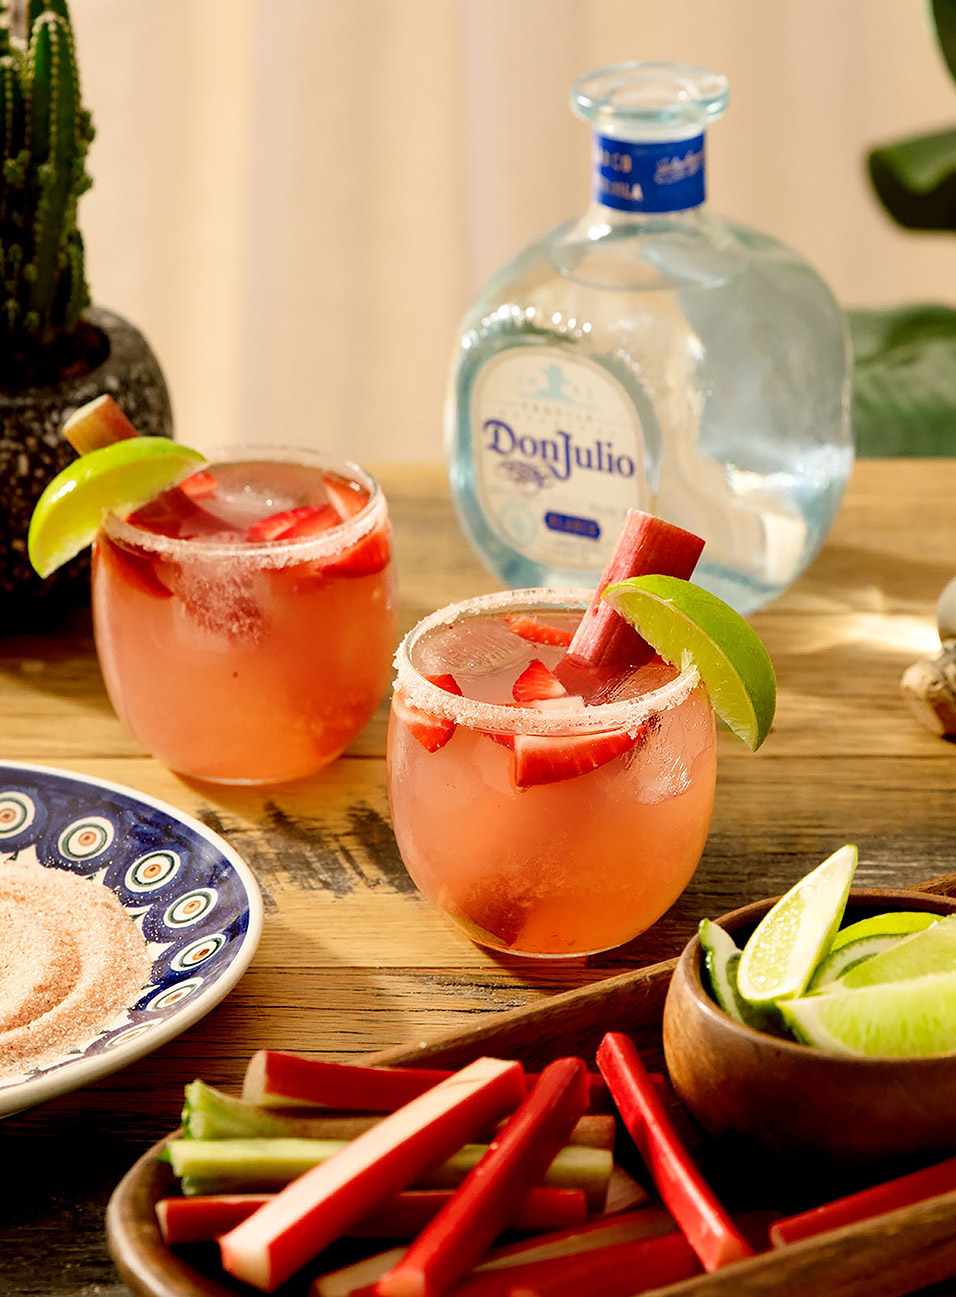 Rhubarb Margarita made with Don Julio Blanco